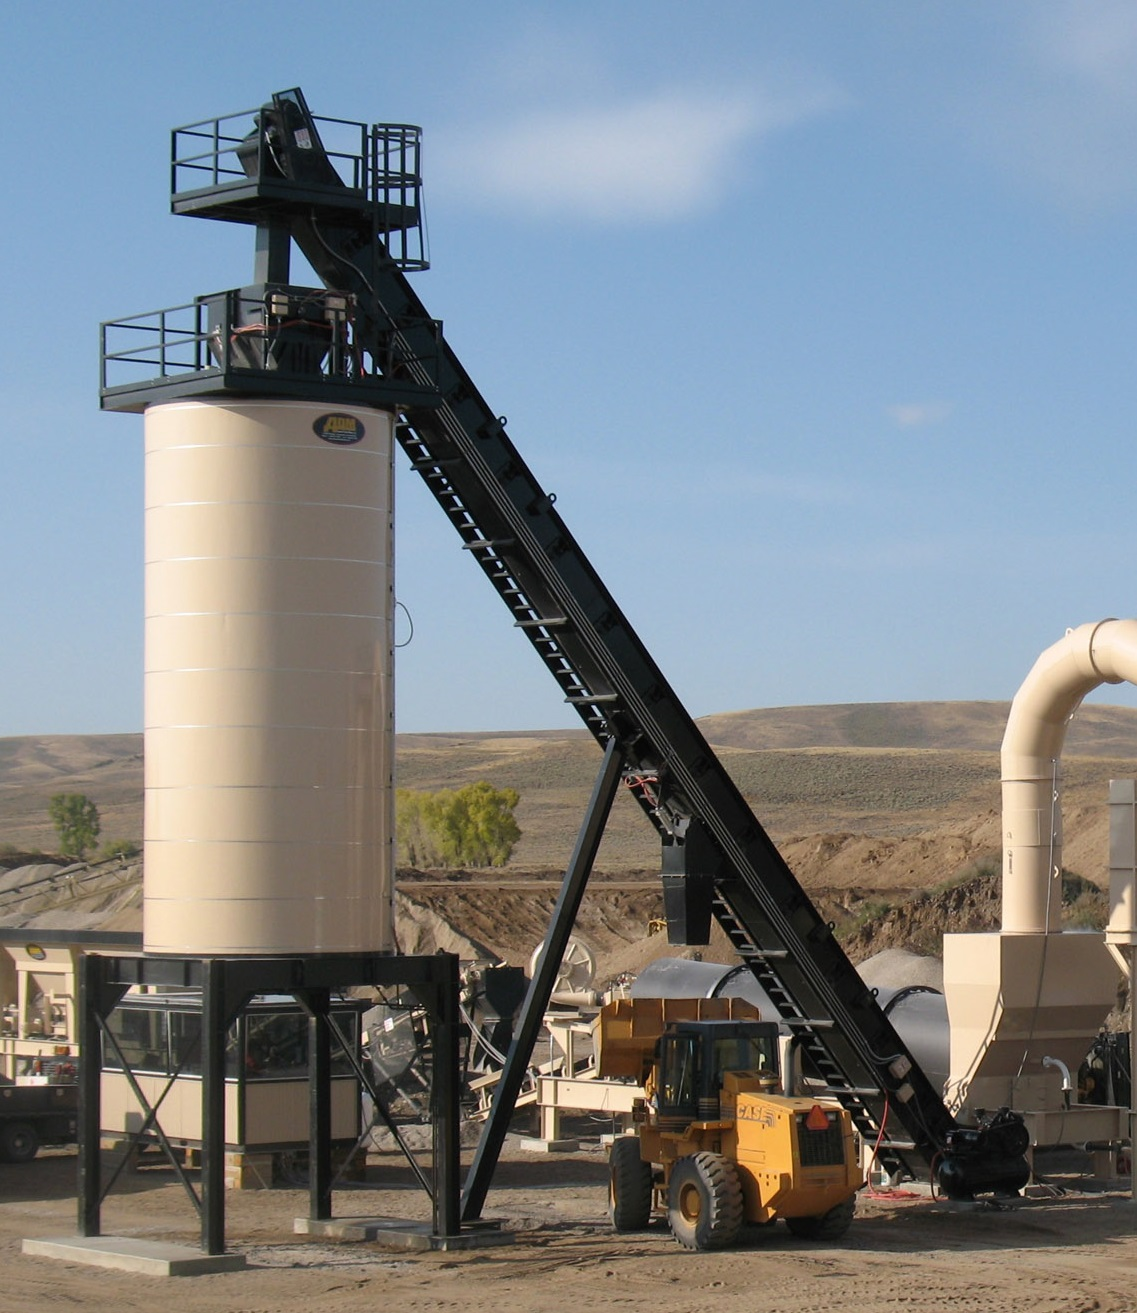 Asphalt Drum Mixers offers heavy-duty drag conveyors with material transport ratings up to 500 TPH.